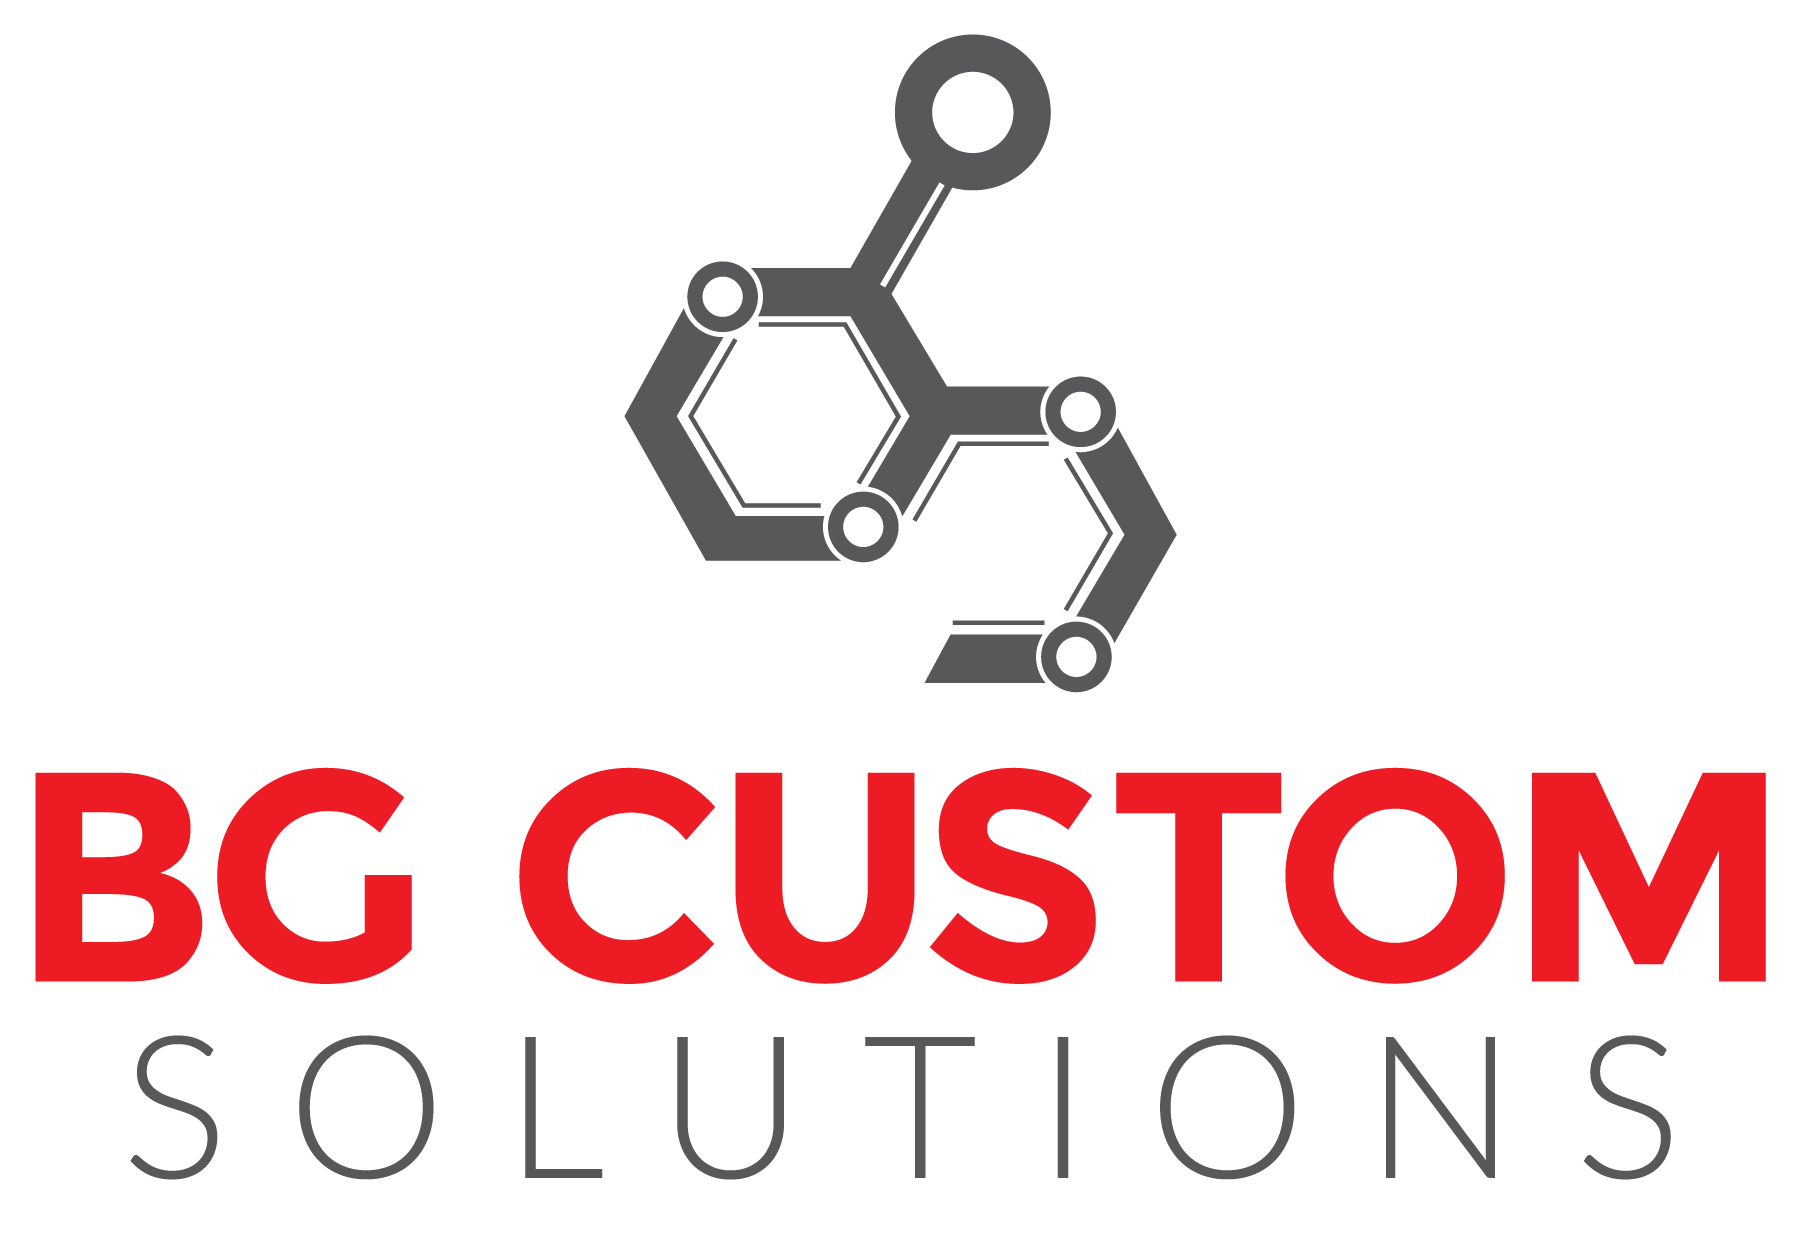 BG Custom Solutions